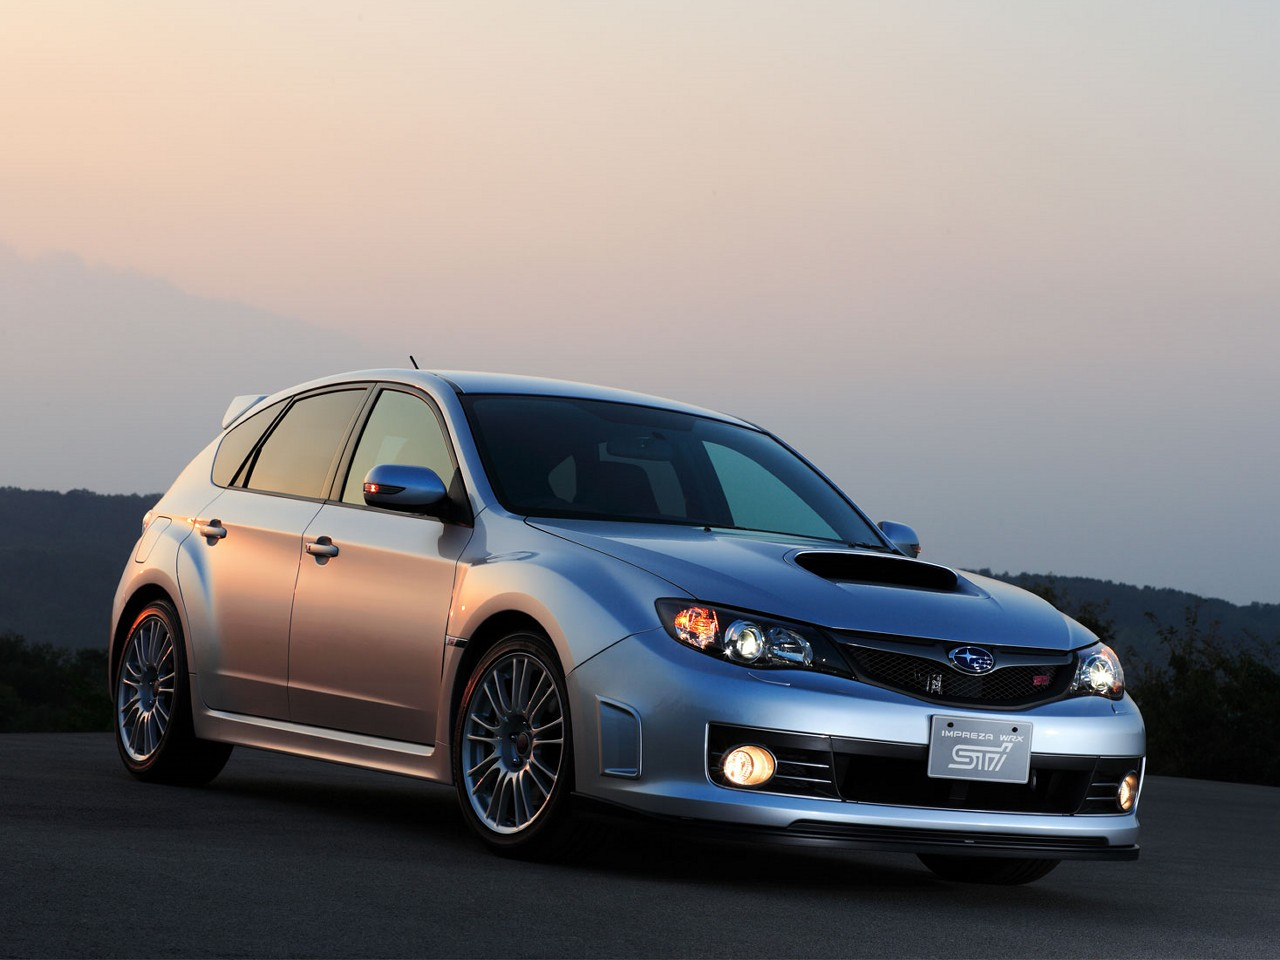 2008 subaru impreza wrx sti motor desktop. Black Bedroom Furniture Sets. Home Design Ideas